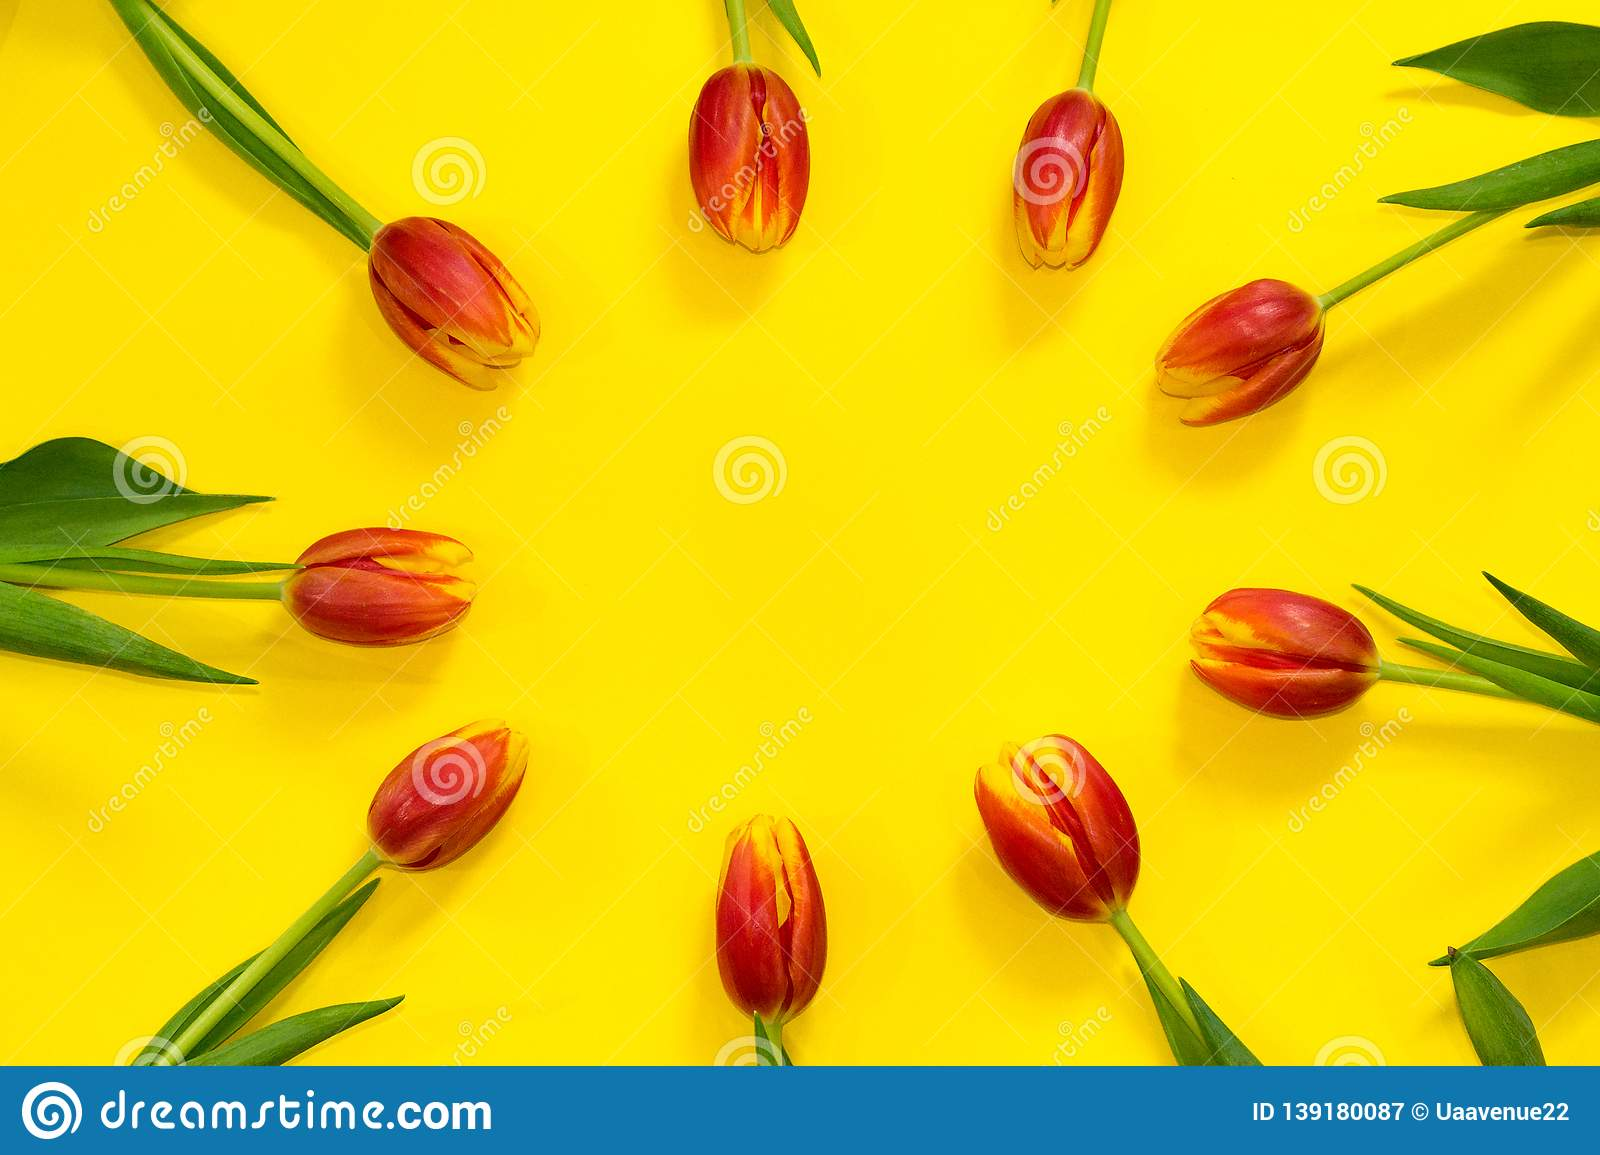 Floral red tulip frame on bright yellow background with copy space in center. Hello spring. Concept of greeting card. celebrating